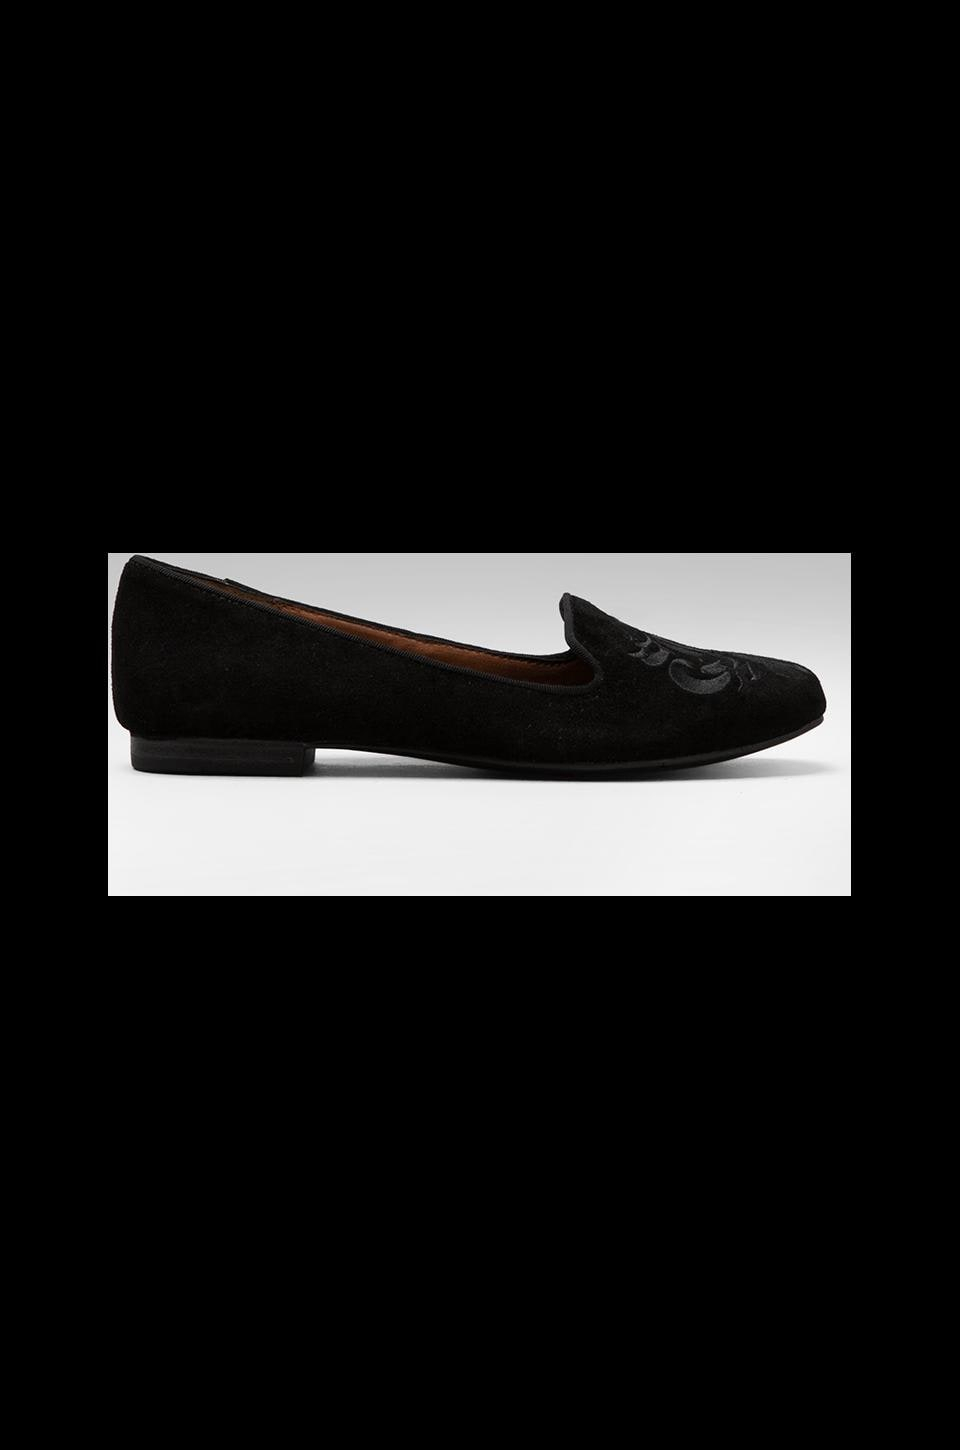 Dolce Vita Gelle Loafer in Black